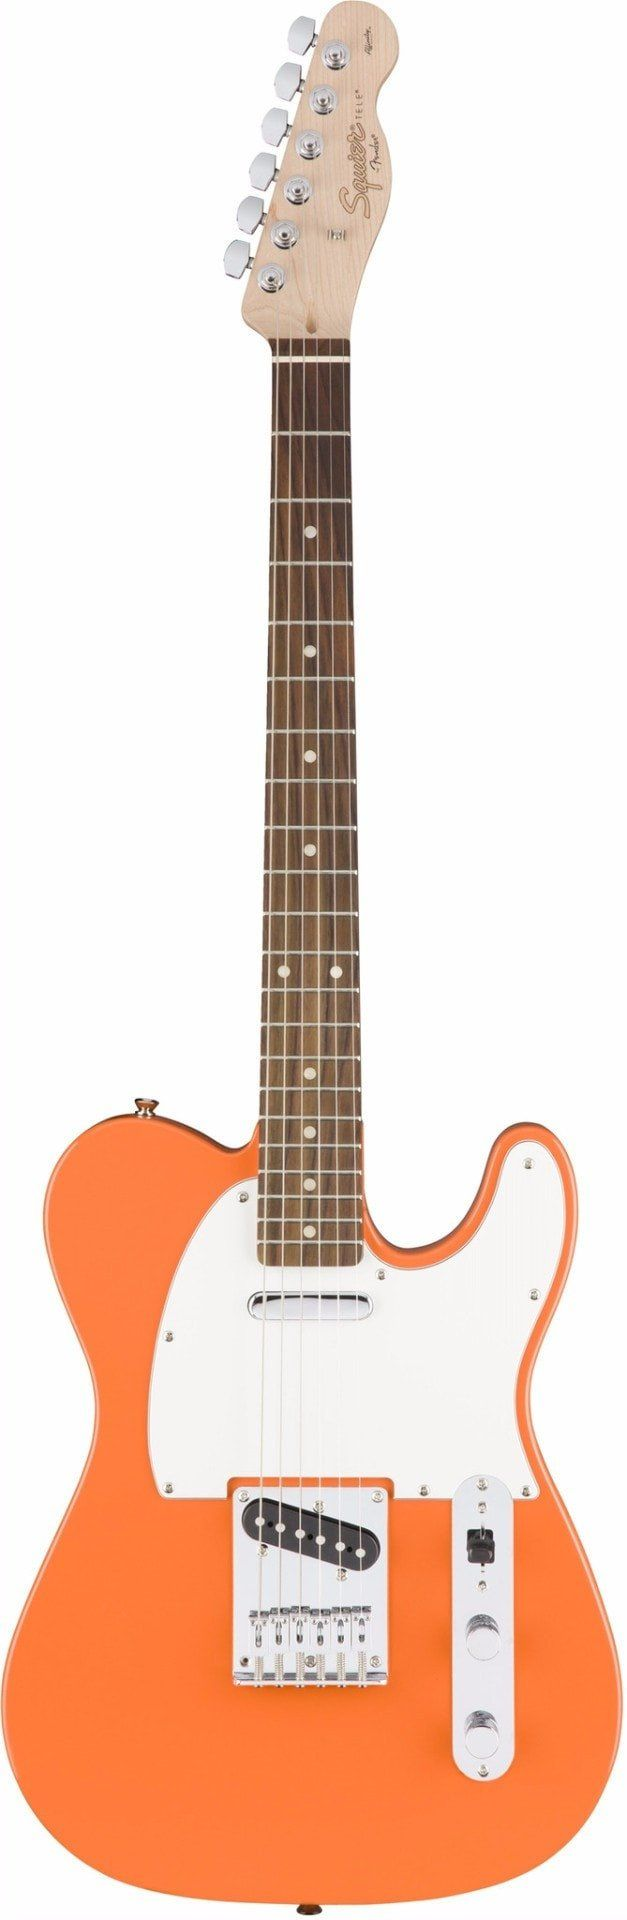 hight resolution of a5c6ae423ce1618731e09317b9017974 the 25 best telecaster body ideas on pinterest fender squier squier affinity squier affinity telecaster wiring diagram